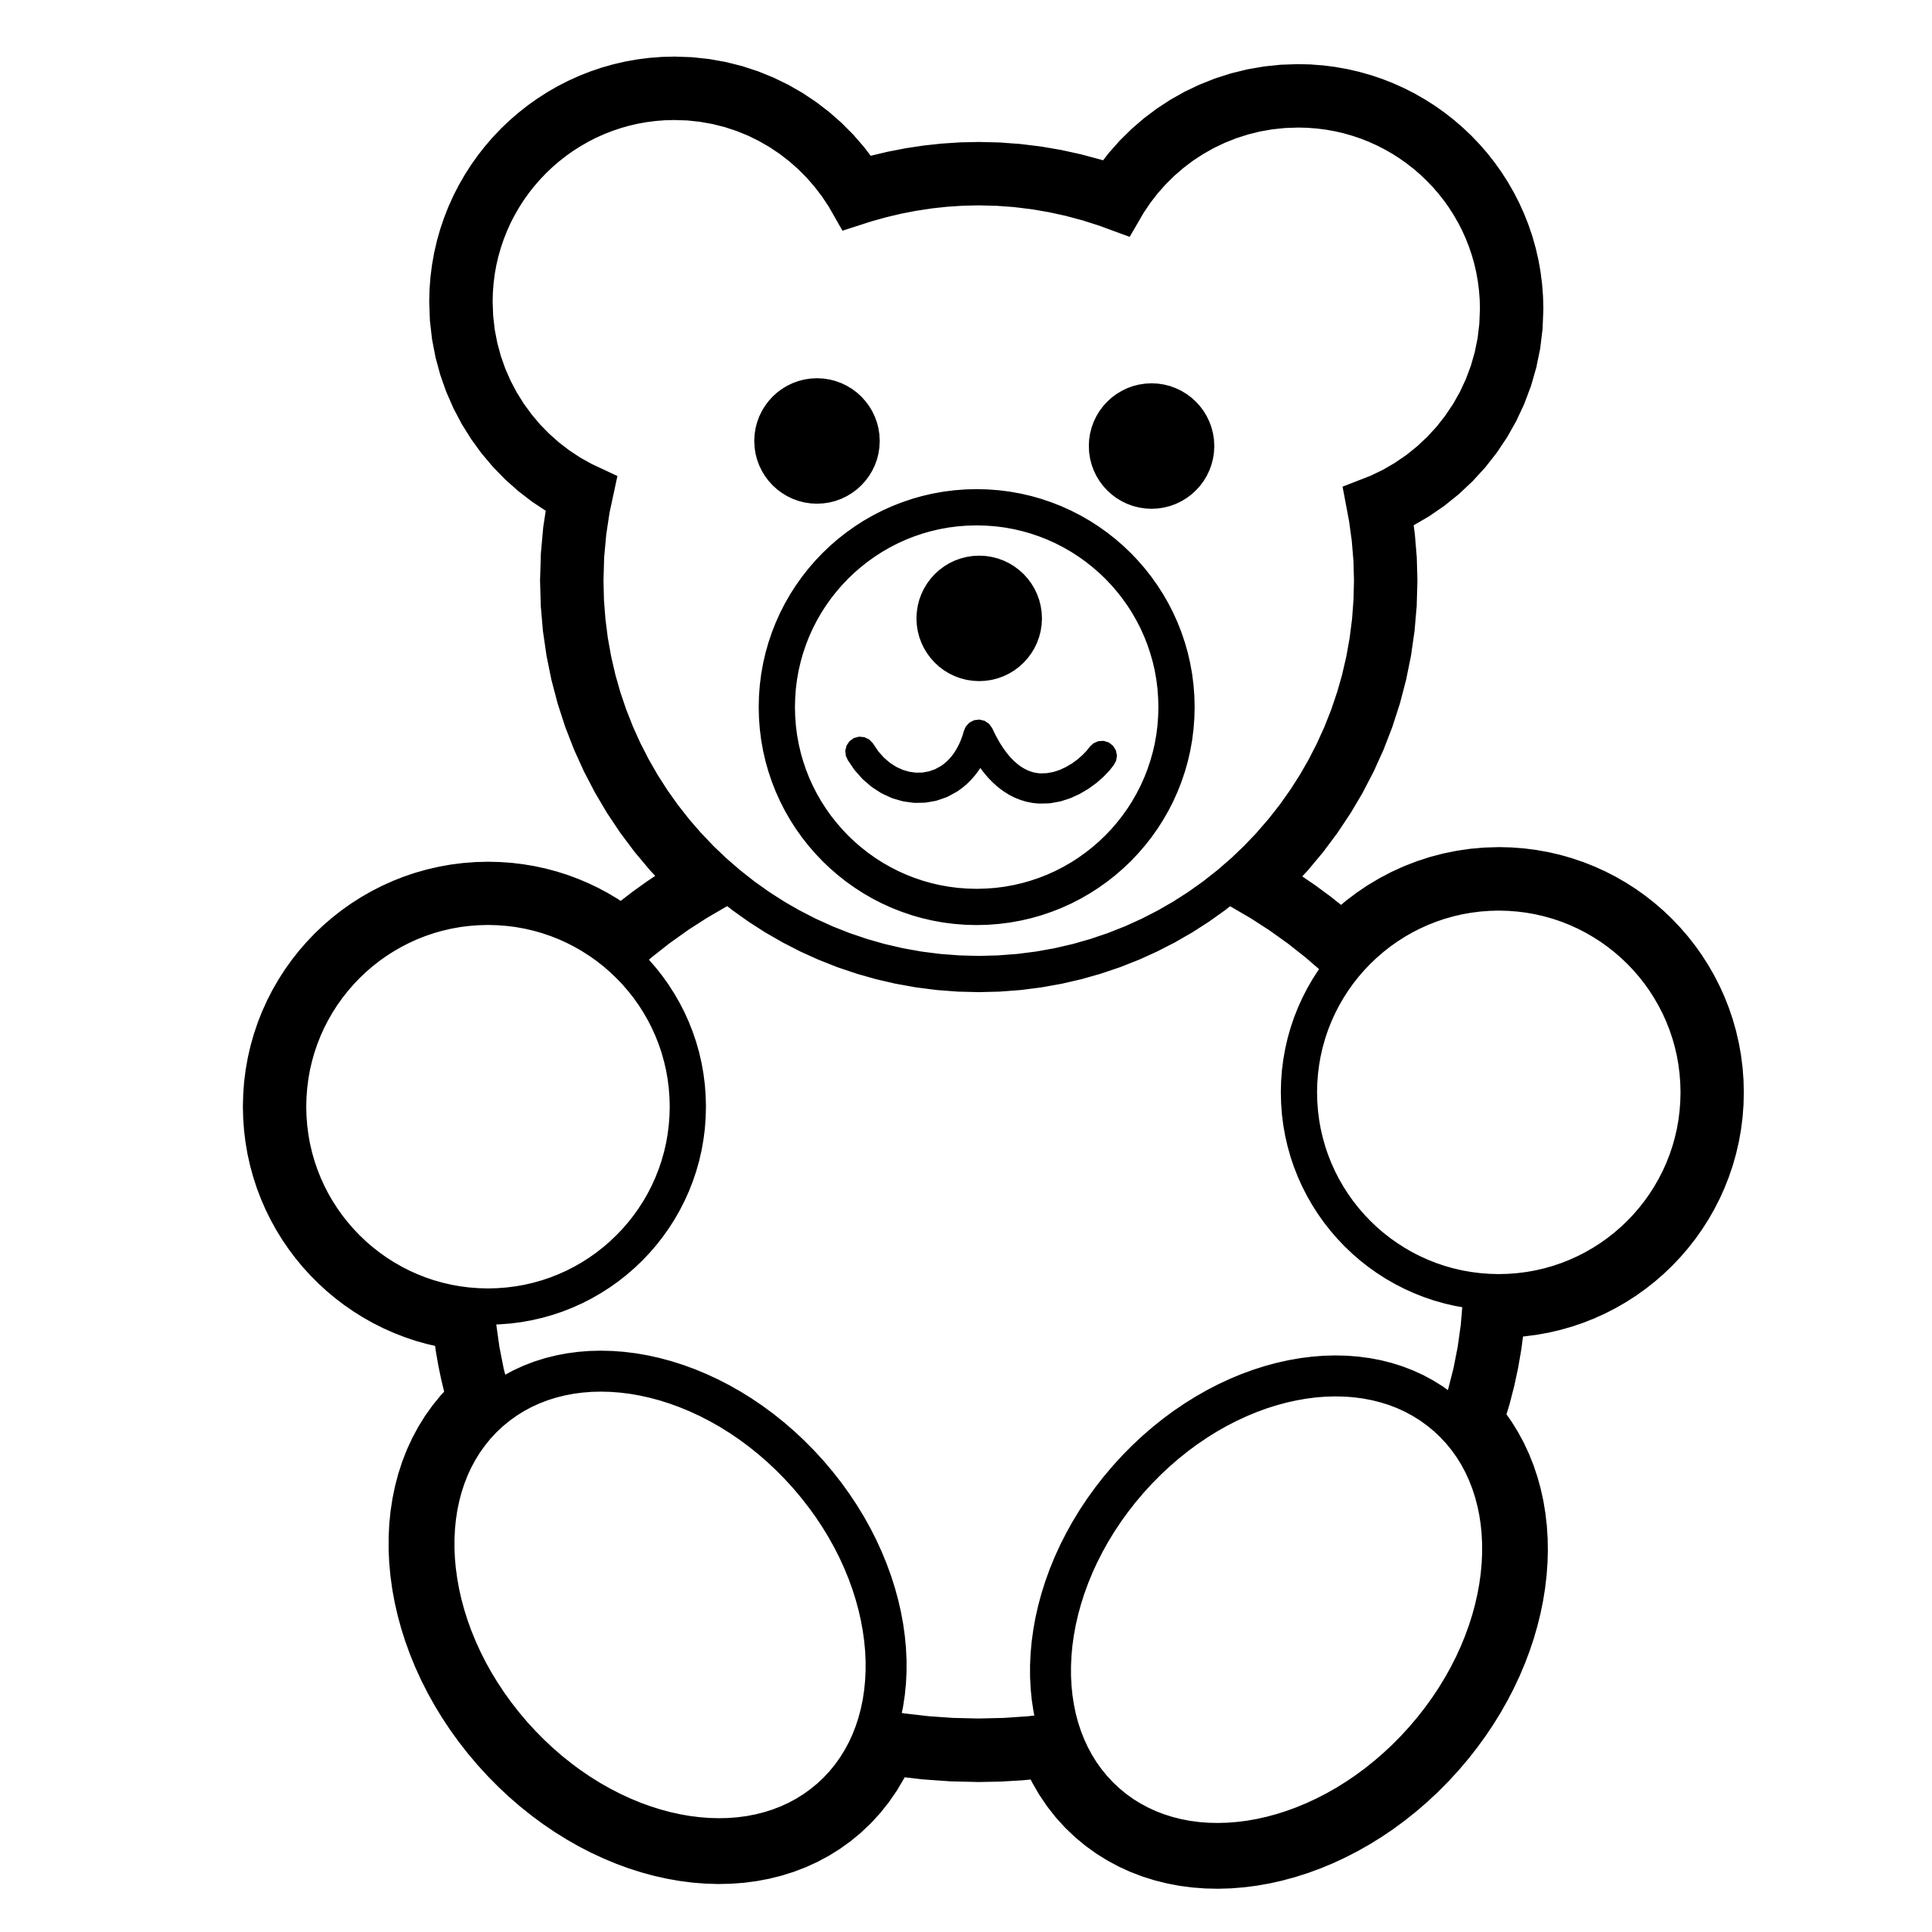 Free Teddy Bear Graphic Download Free Clip Art Free Clip